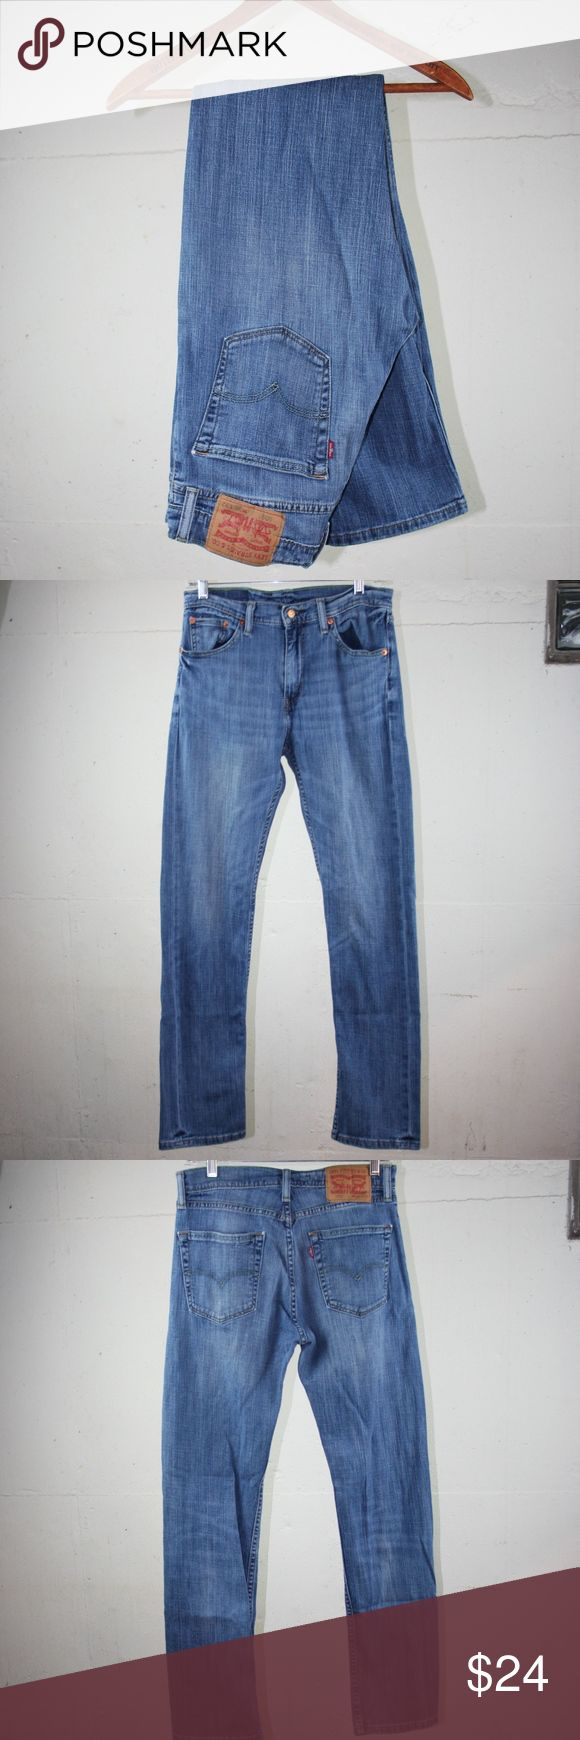 """Levis 505 Jeans Brand: Levis 505 Size: 30x 32 Color: Blue Material: 99% Cotton/ 1% Elastine  Measurements (measured straight across while laying flat): Waist: 15"""" Rise: 11 Inseam: 32""""  Thank you for your interest! Levi's Jeans"""